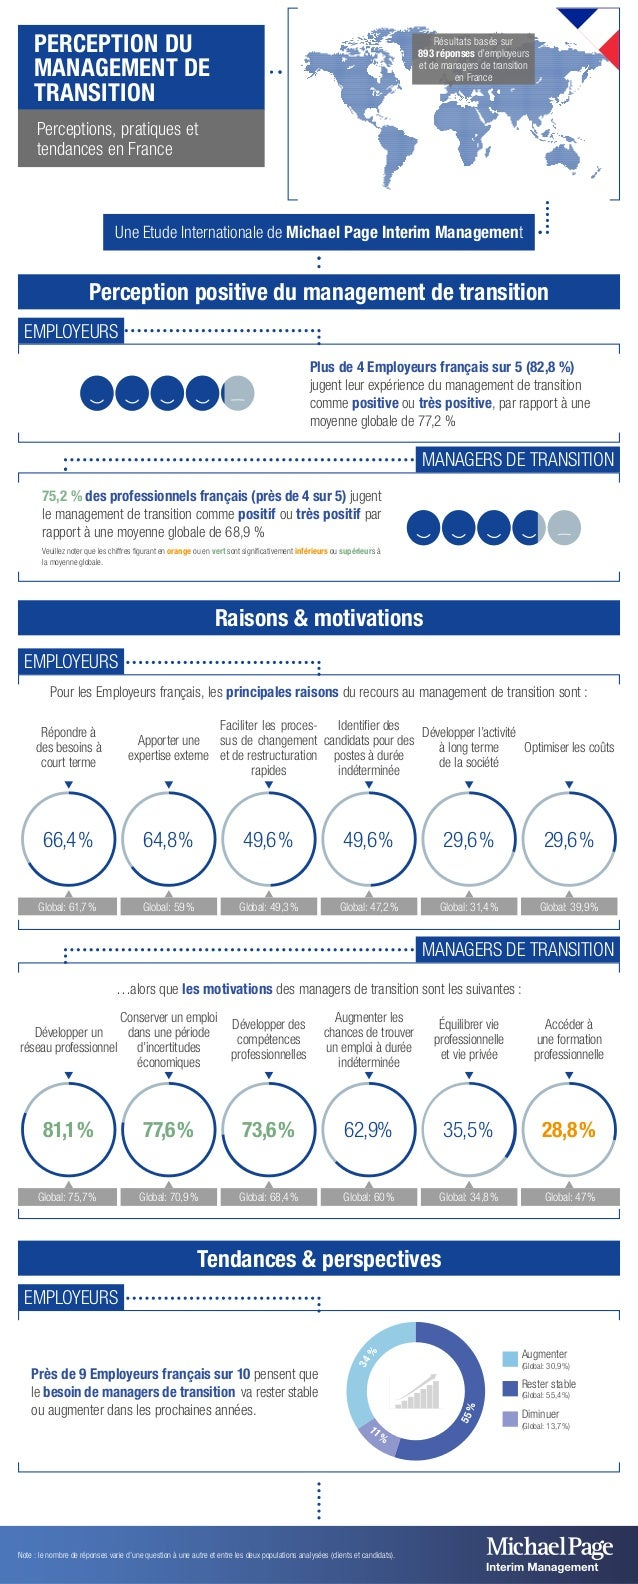 Une Etude Internationale de Michael Page Interim Management  Perception positive du management de transition  Raisons & mo...